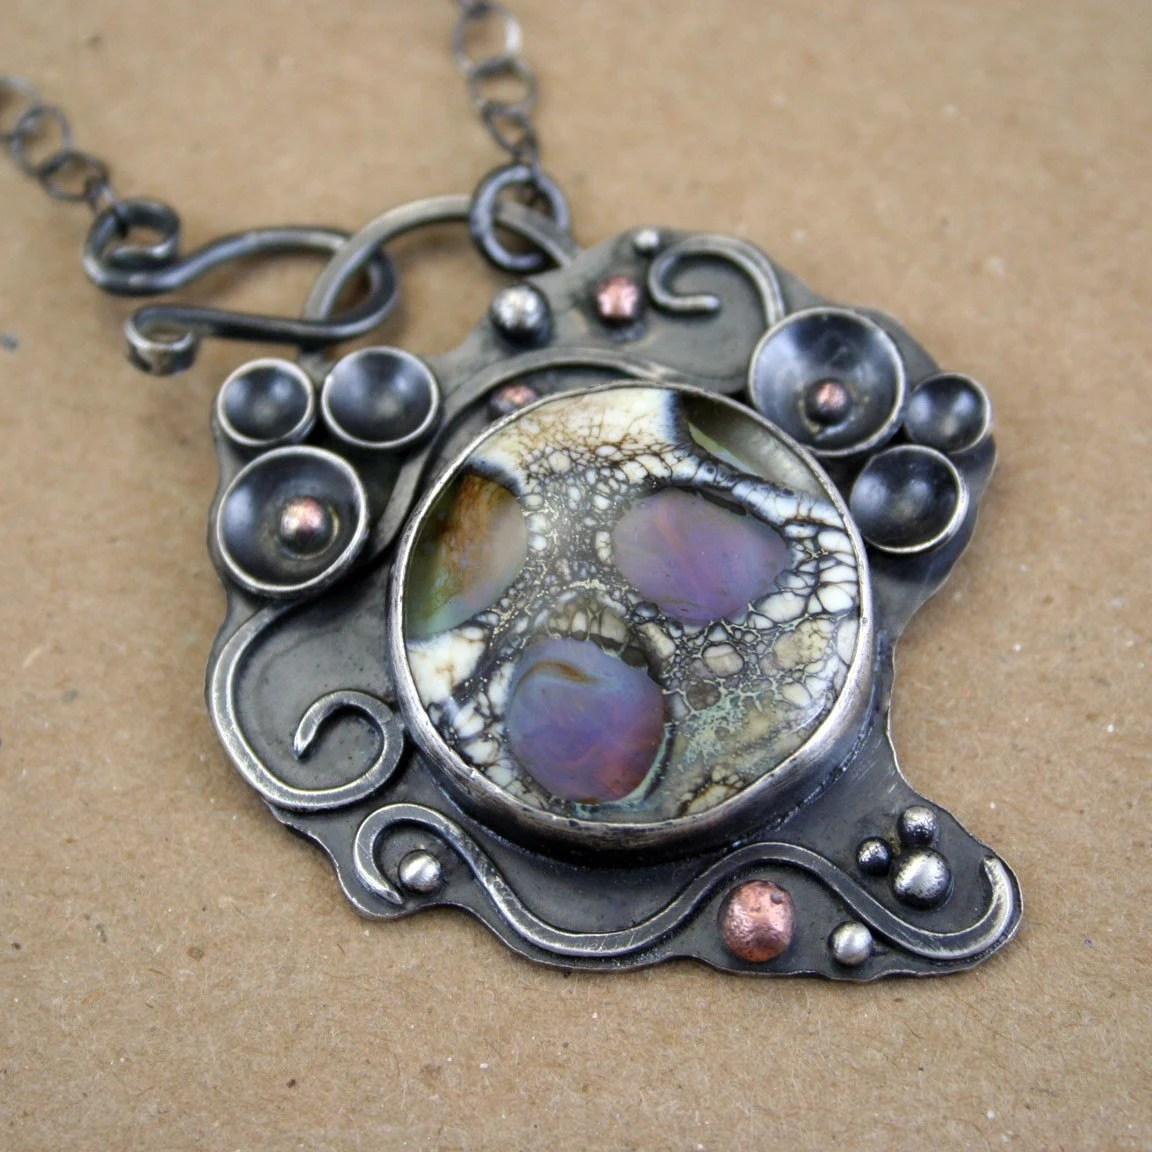 RESERVED-MIDNIGHTS BLOOM - Handmade Sterling, Copper & Art Glass Lampwork Cabochon Pendant Necklace